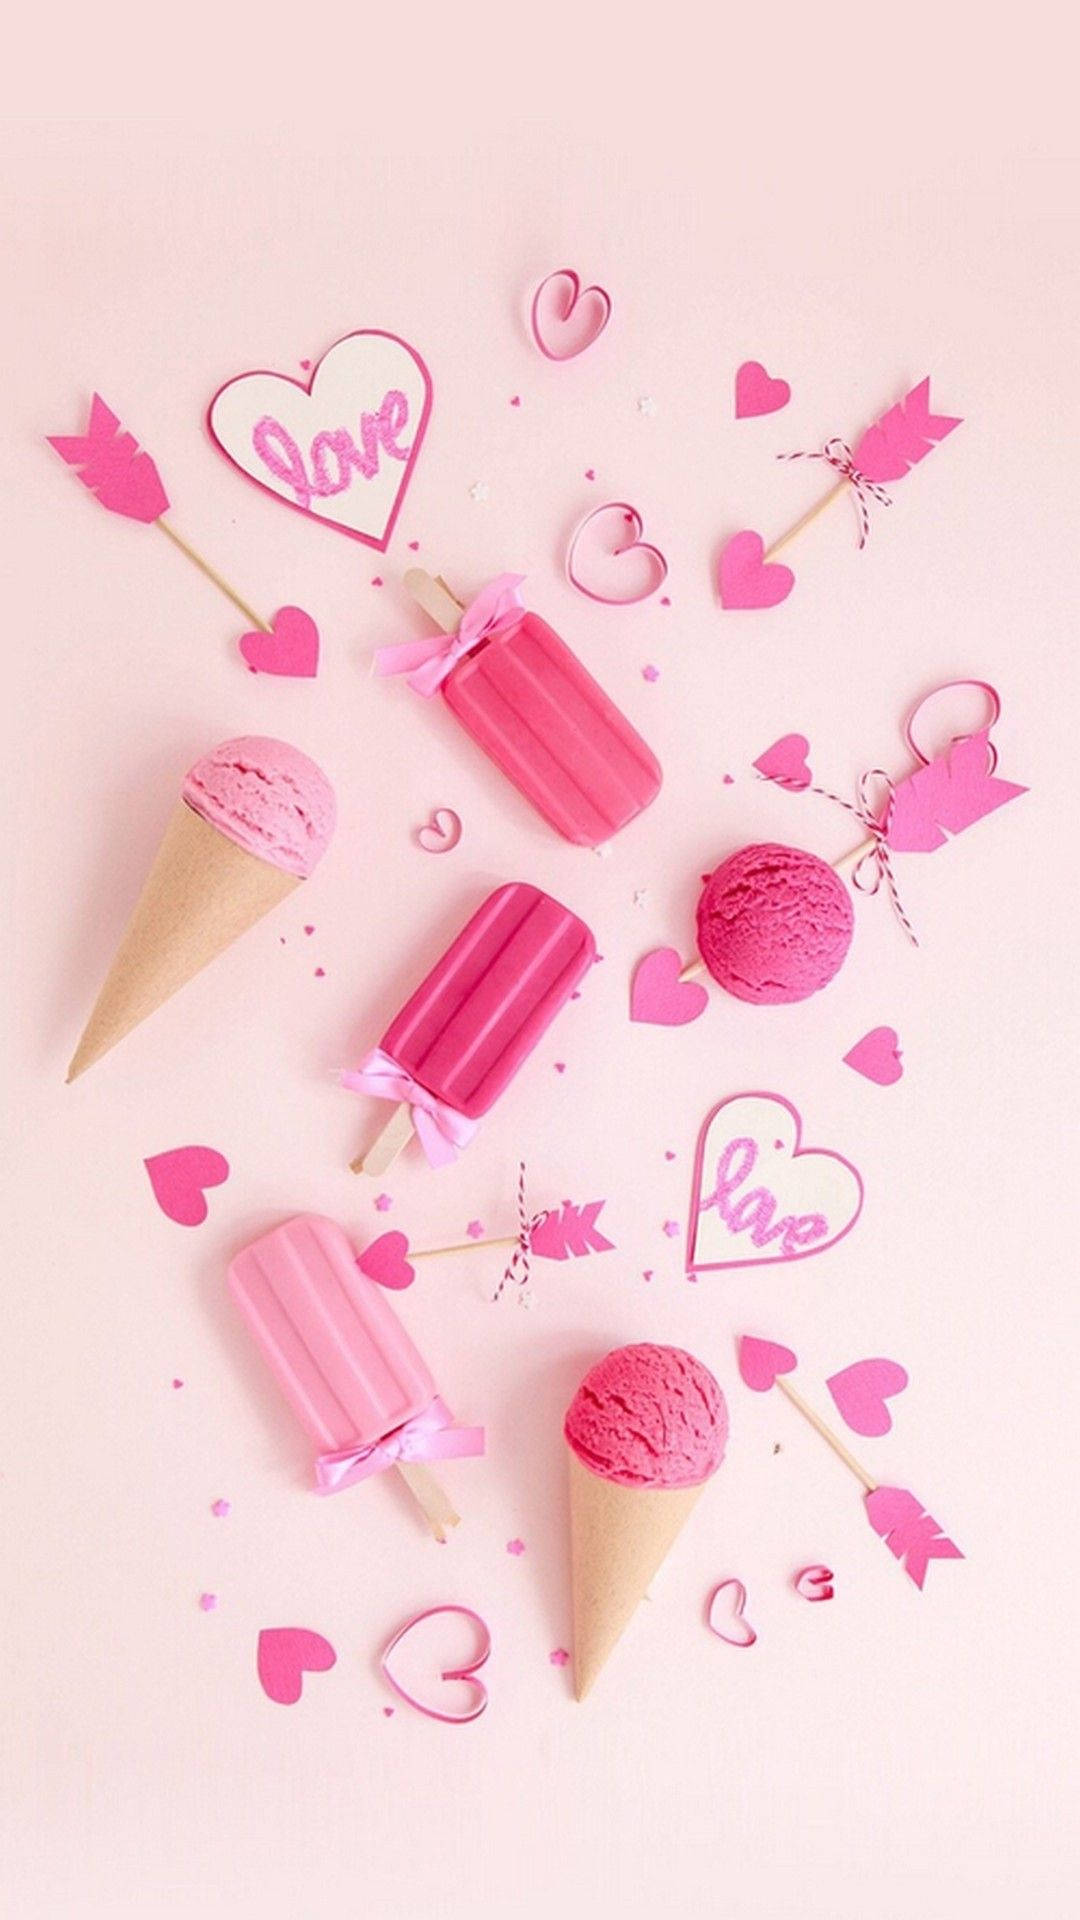 Cute Hd Wallpapers Hupages Download Iphone Wallpapers Pink Wallpaper Iphone Iphone Wallpaper Girly Love Pink Wallpaper